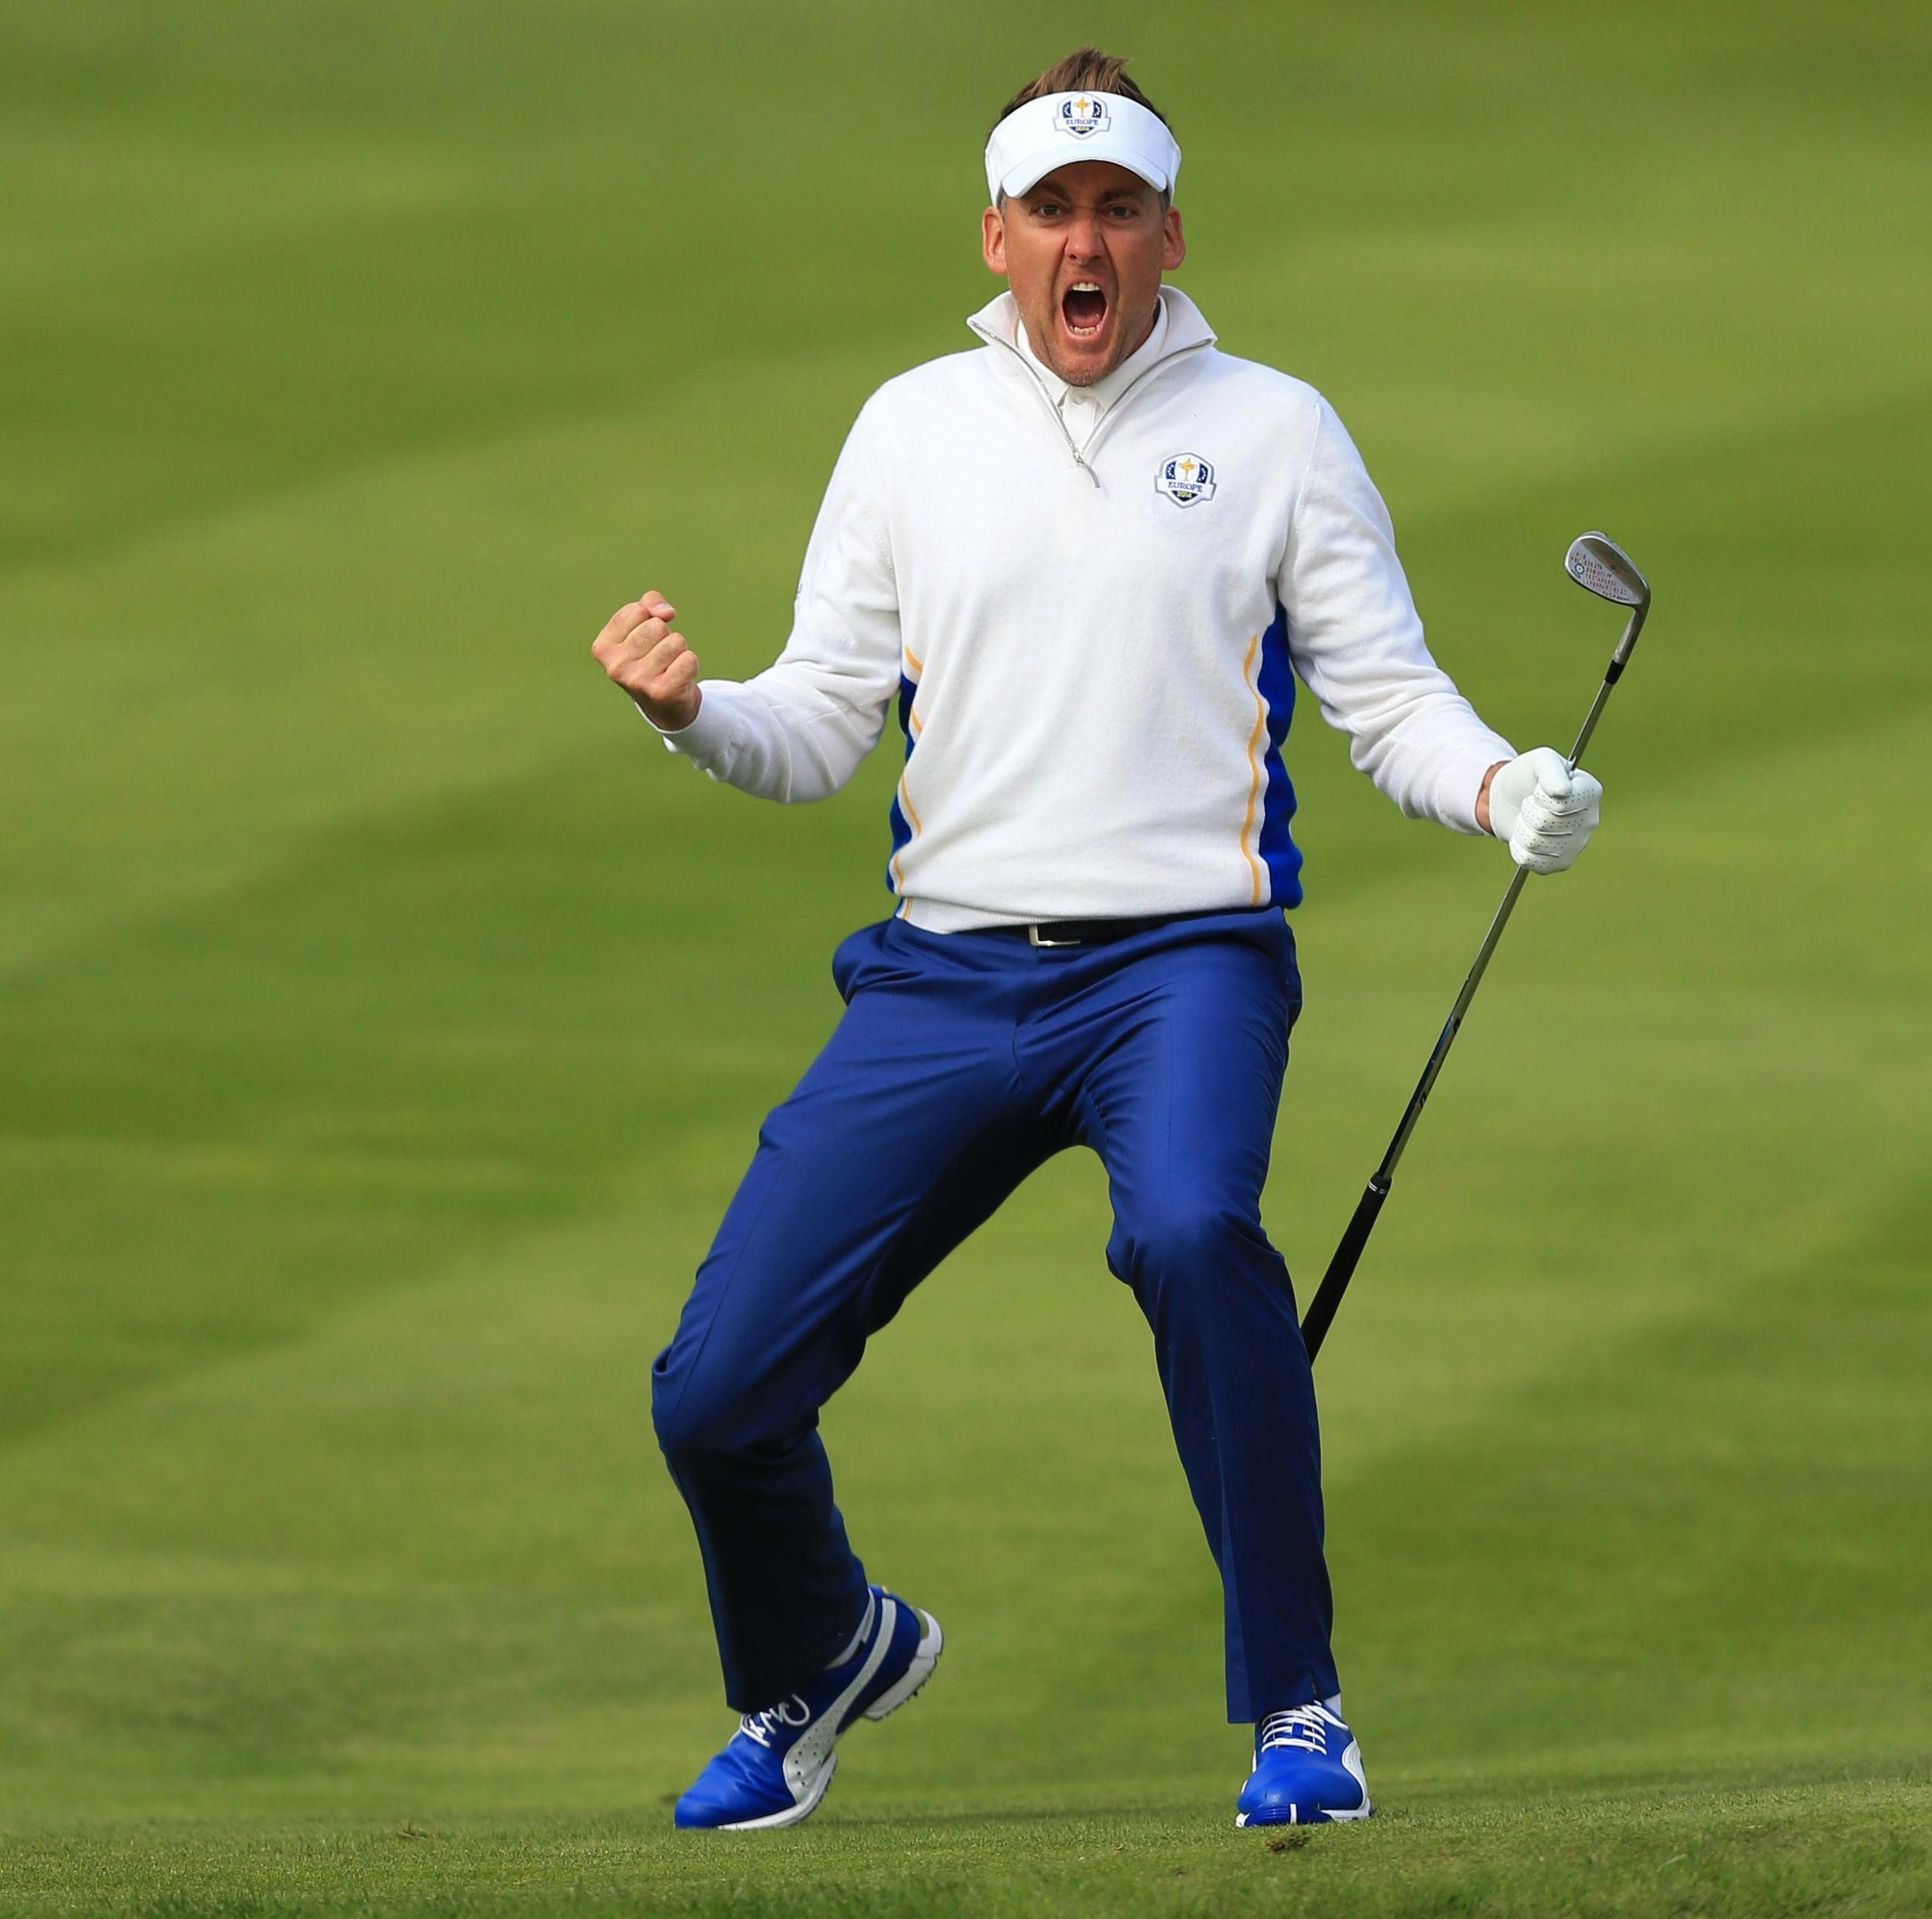 Ian Poulter is already a Ryder Cup hero and gets another chance to write a new chapter in the history of the event